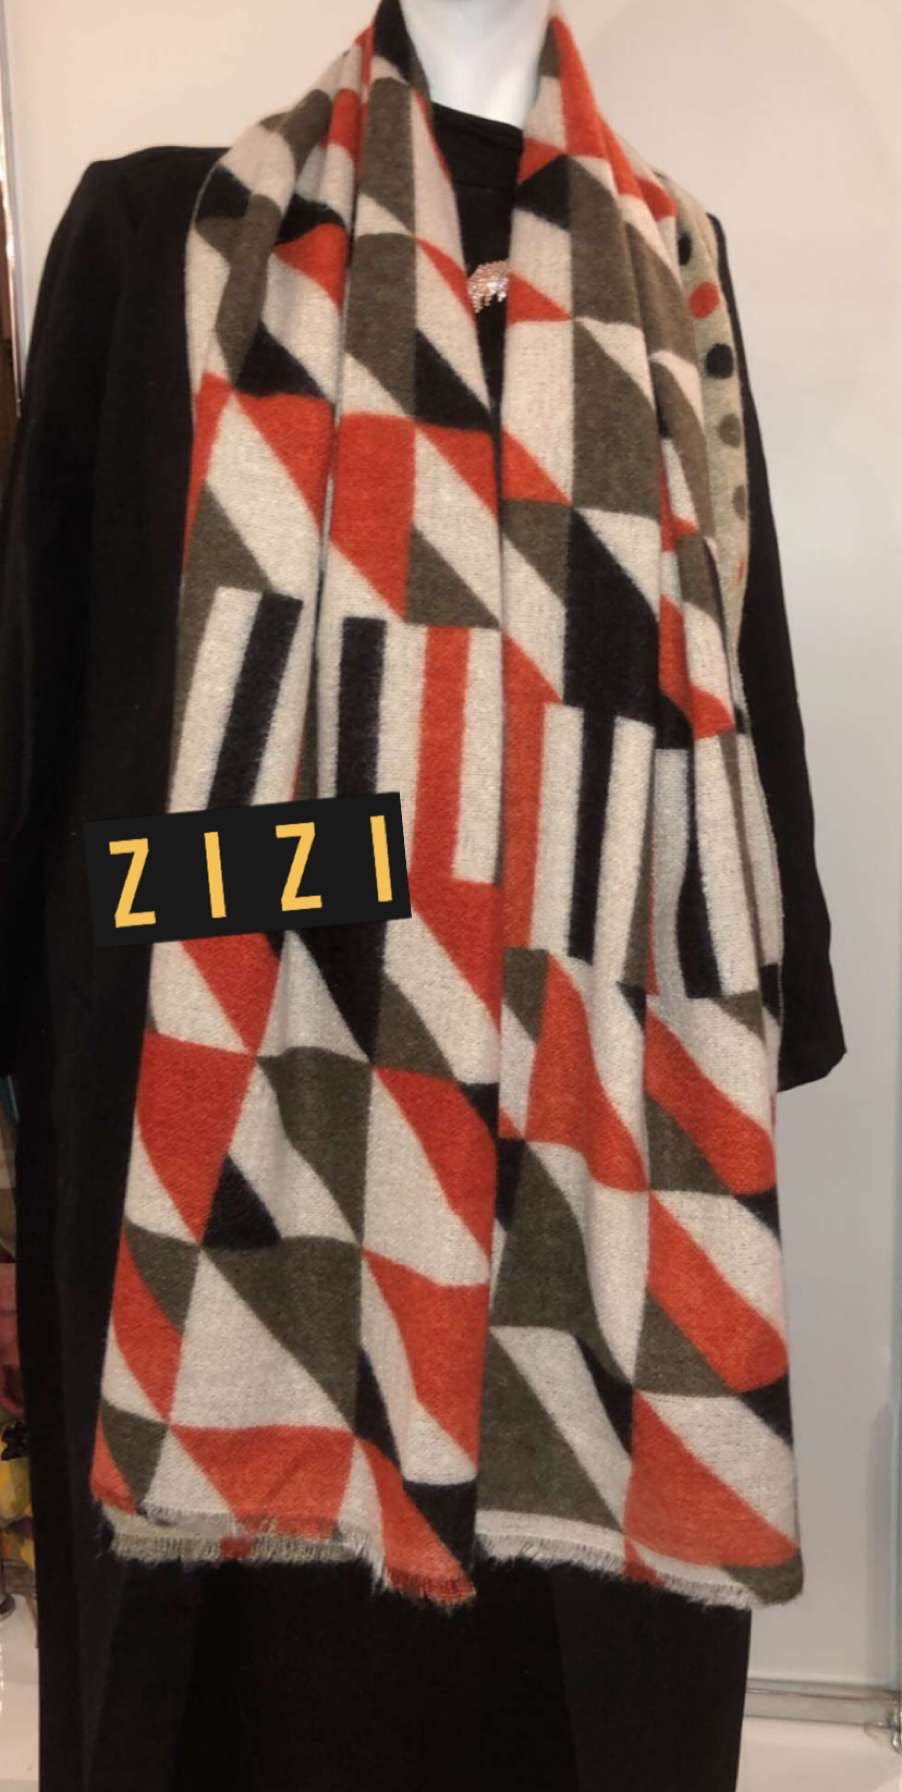 Winter Print Scarf - Red/Grey/Black - ZIZI Boutique